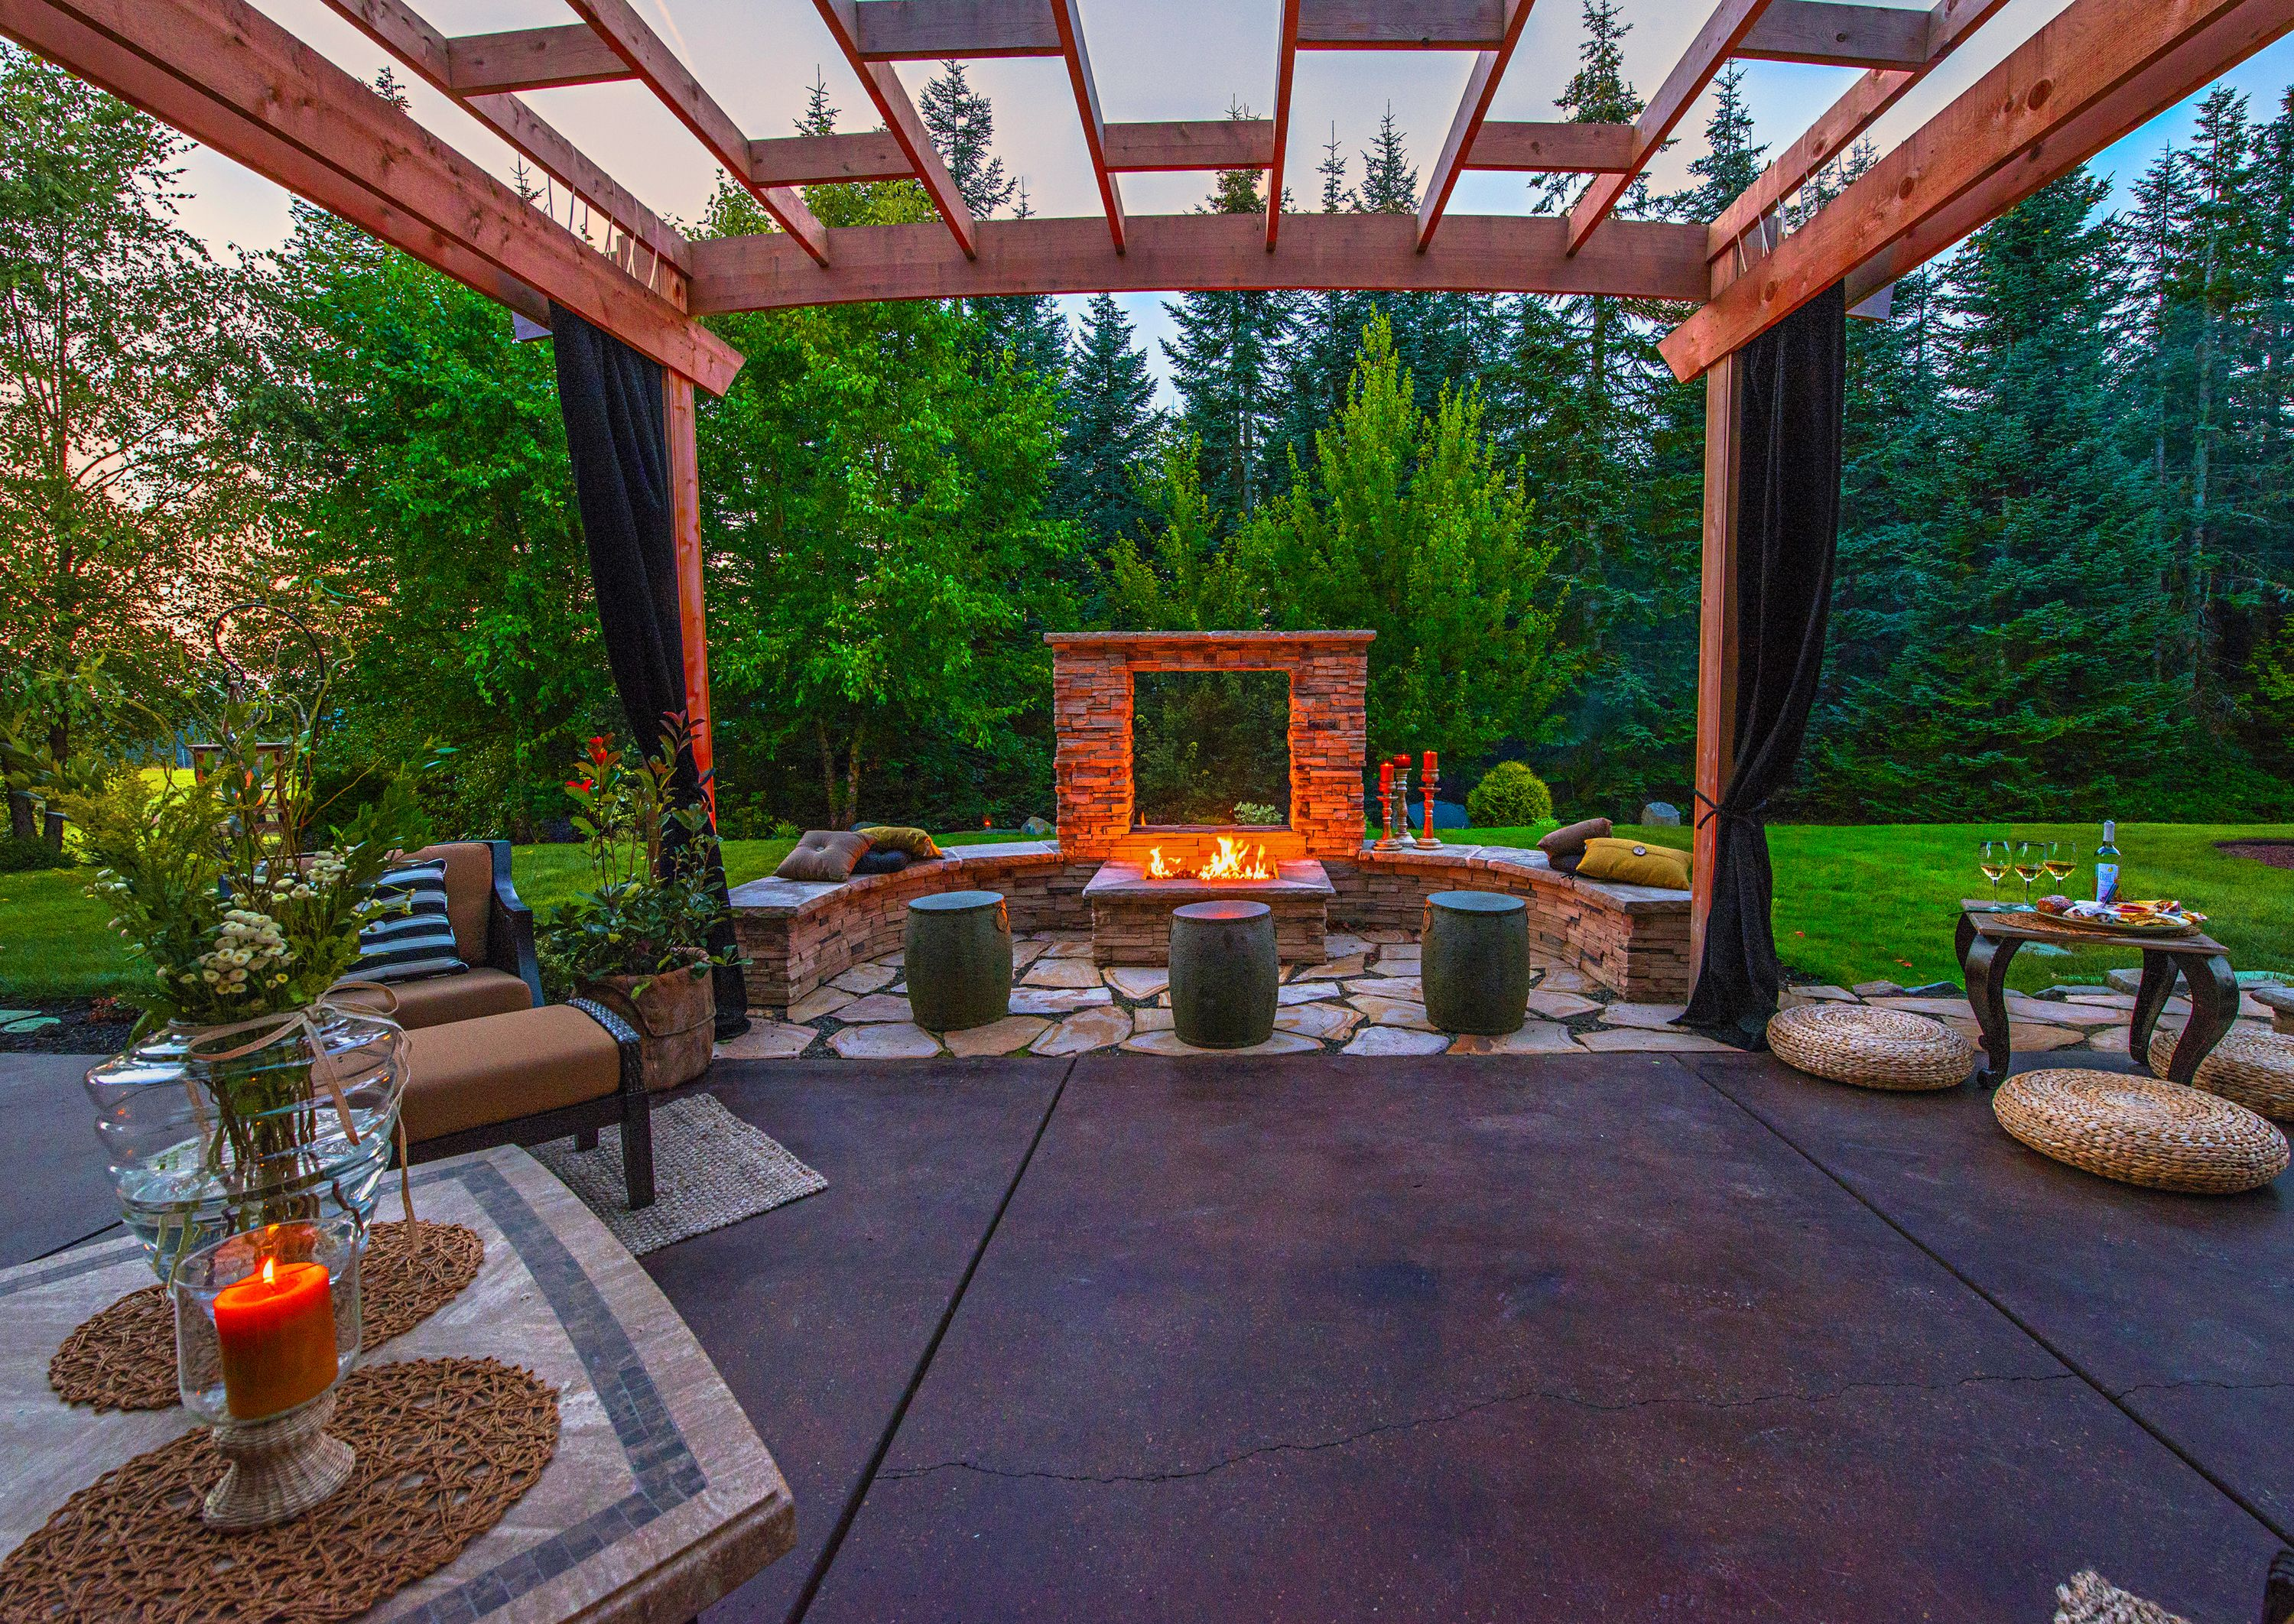 Refection Wall View Window Firepit Under Pergola Http Www Paradiserestored Com Landscaping Blog Exterior Design Rev Outdoor Living Design Outdoor Rooms Patio